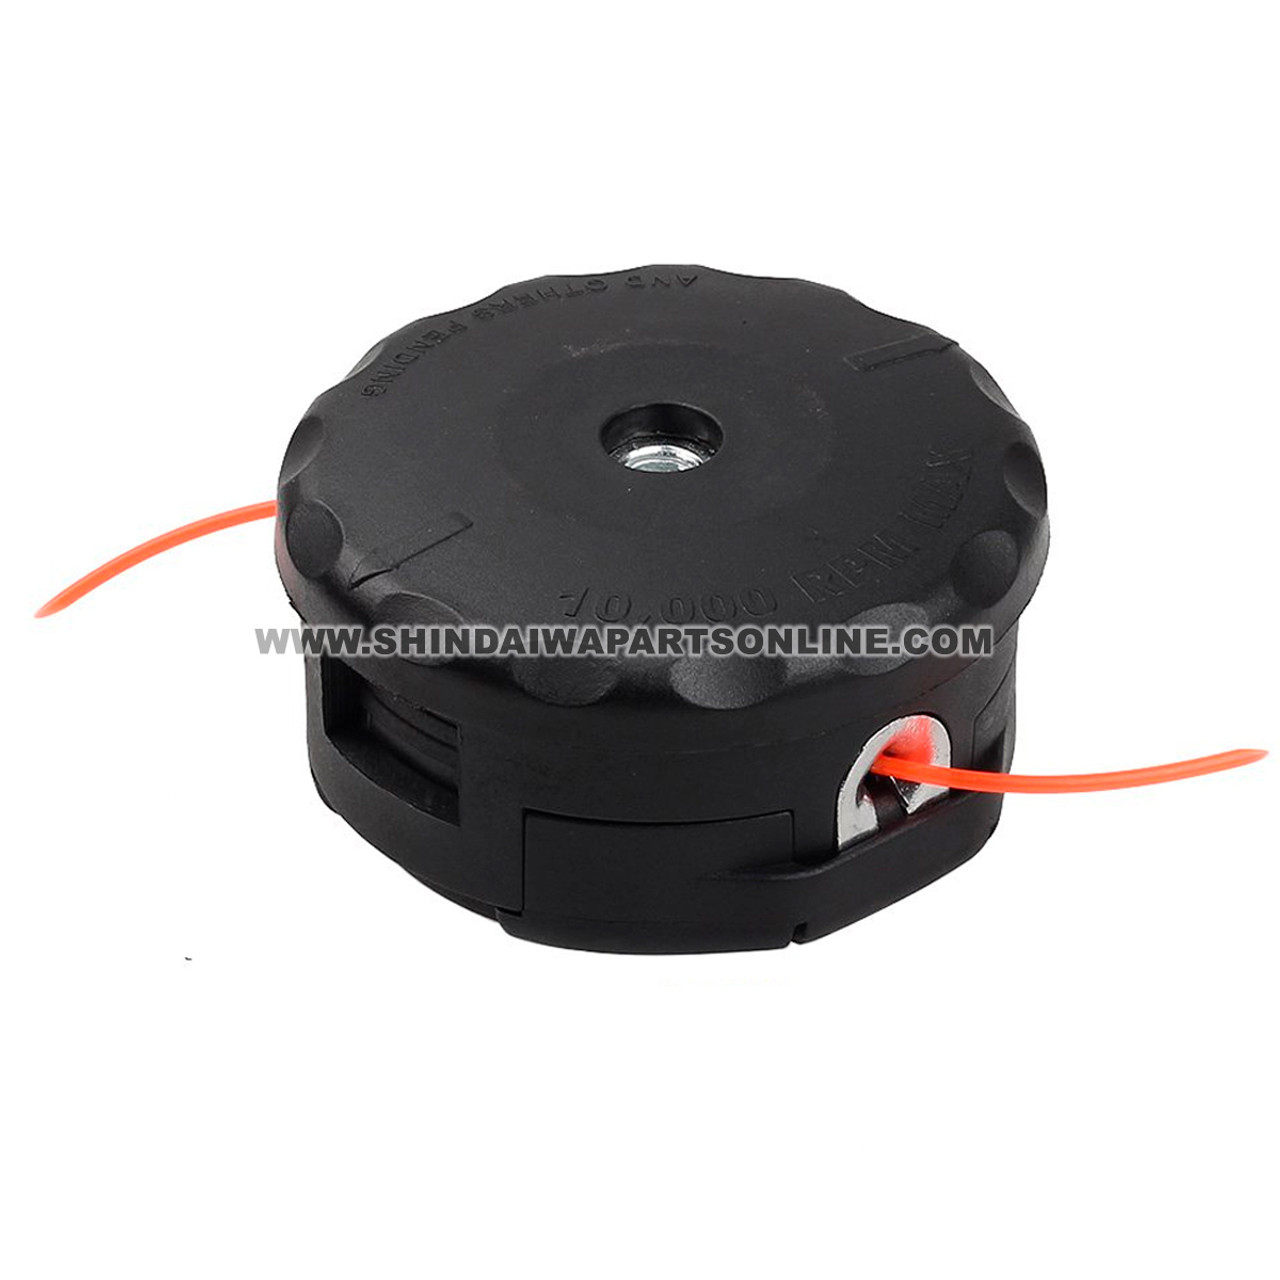 Shindaiwa T231 Trimmer Head 78890 30000 front view